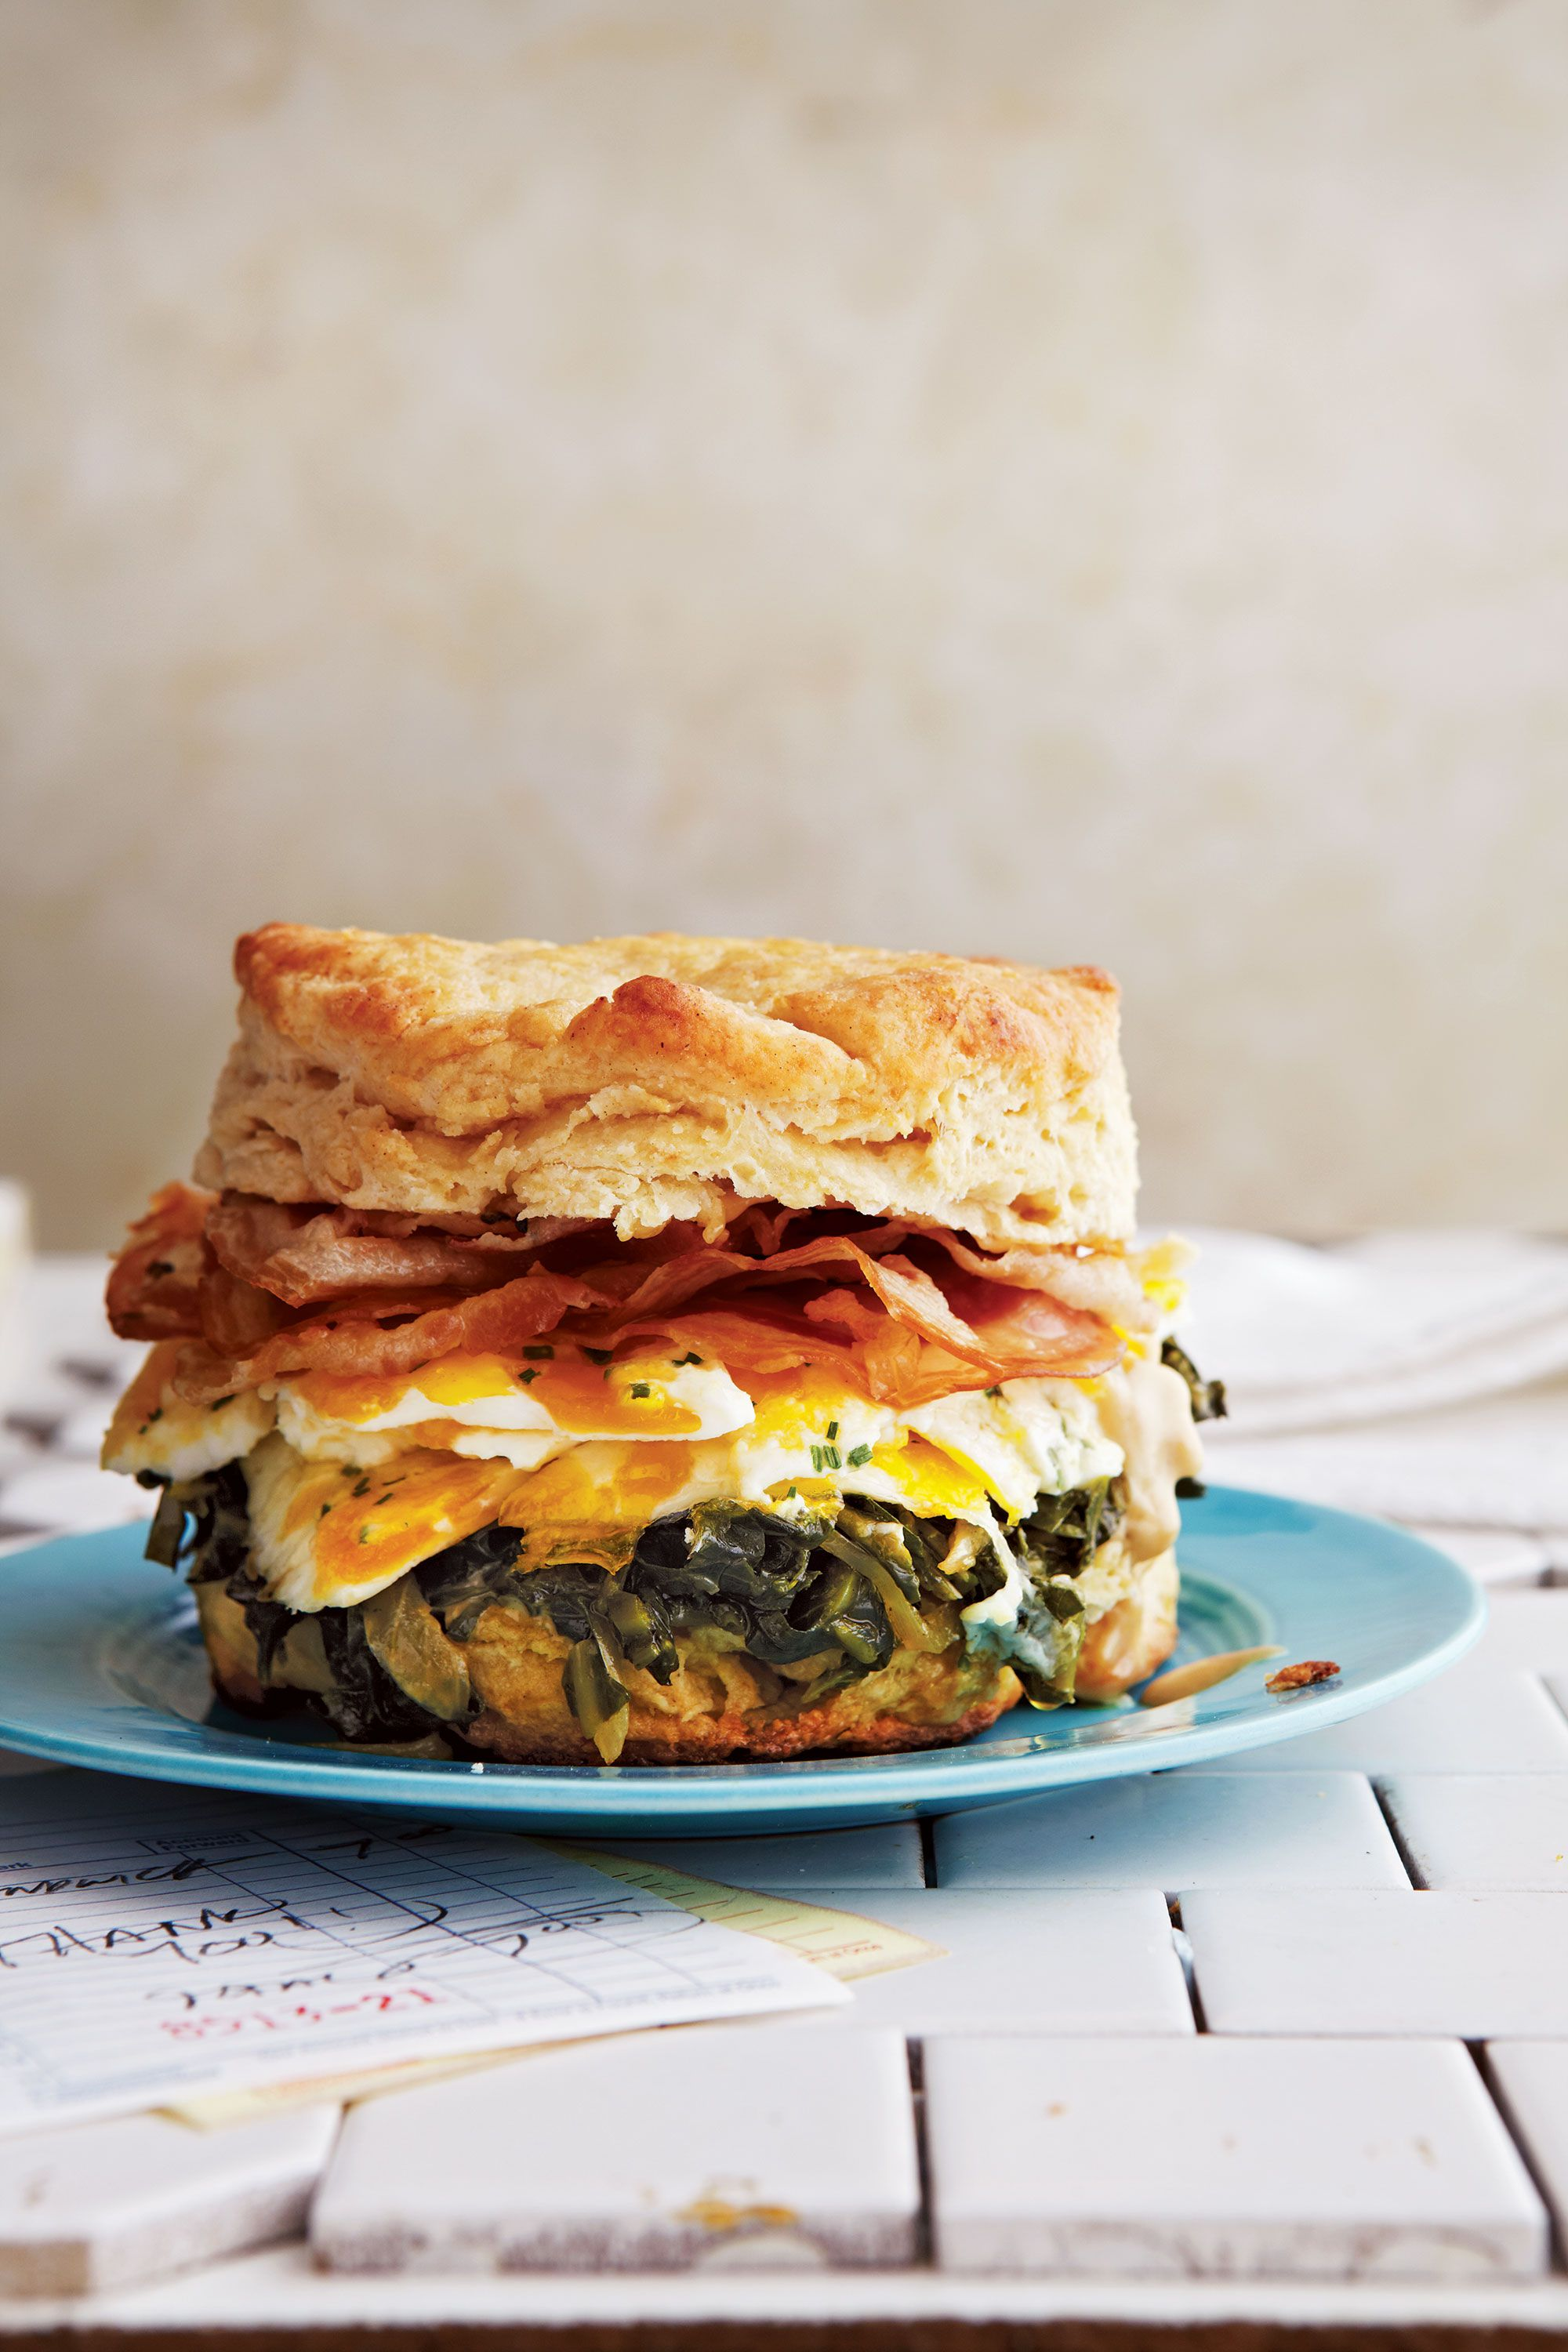 """Alvin Cailan of Los Angeles' cultish Eggslut goes pancetta-crazy in this sandwich, using eight slices on top of his gorgeously marbleized egg and cooking the collard greens in pancetta fat. Get the recipe for <a href=""""https://www.saveur.com/article/recipes/biscuits-with-pancetta-collard-greens-marbleized-eggs-and-espresso-aioli/"""">Biscuits with Pancetta, Collard Greens, Marbleized Eggs, and Espresso Aïoli</a>"""